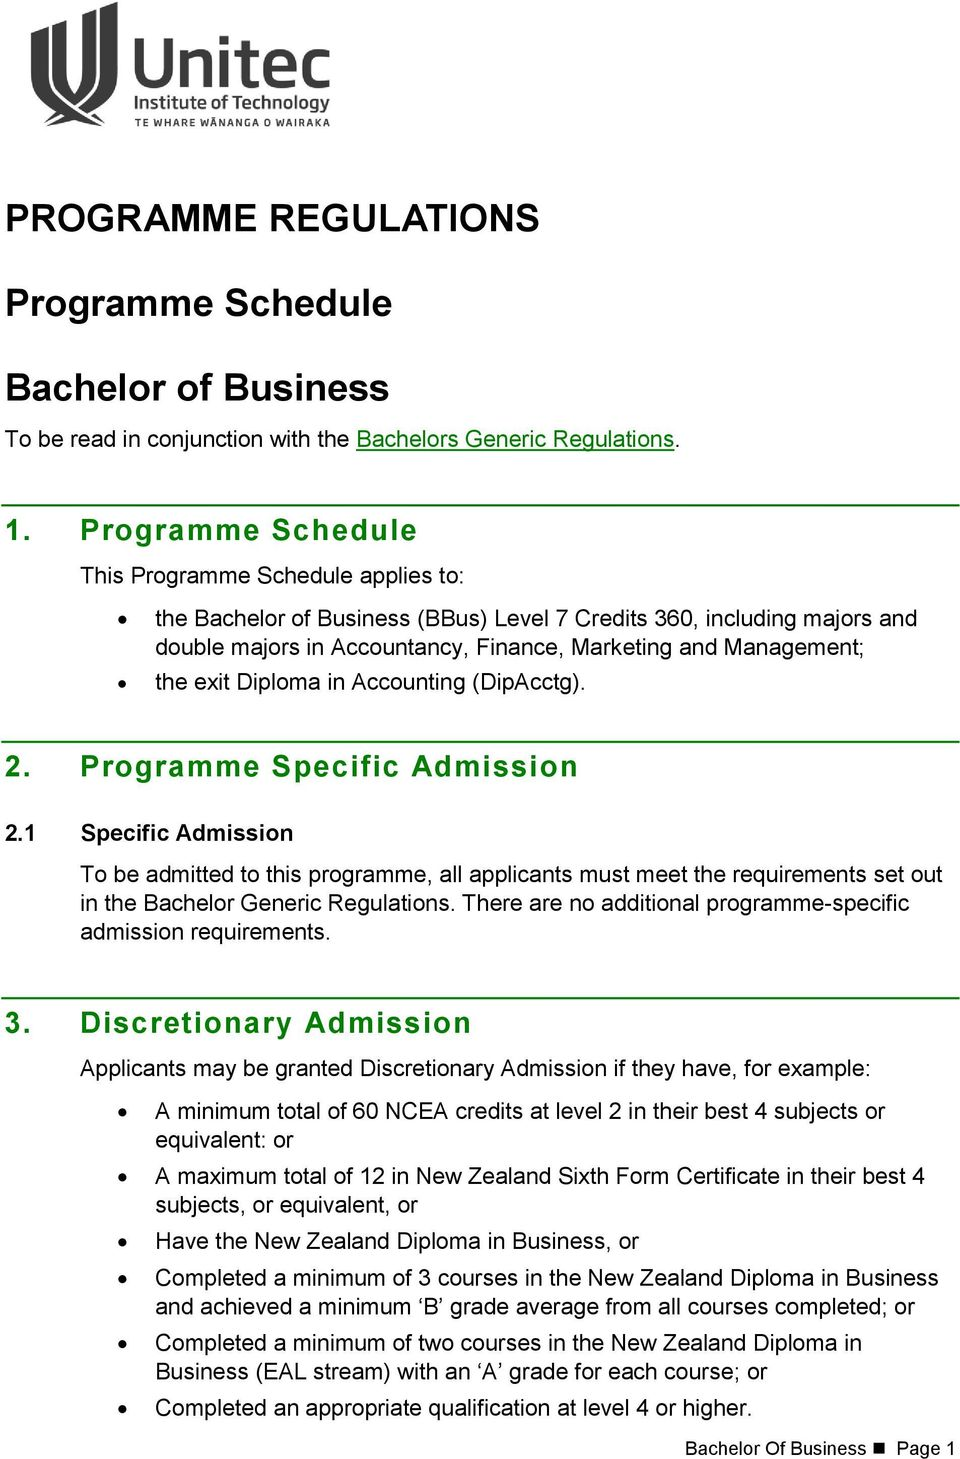 programme regulations. programme schedule. bachelor of business. 1